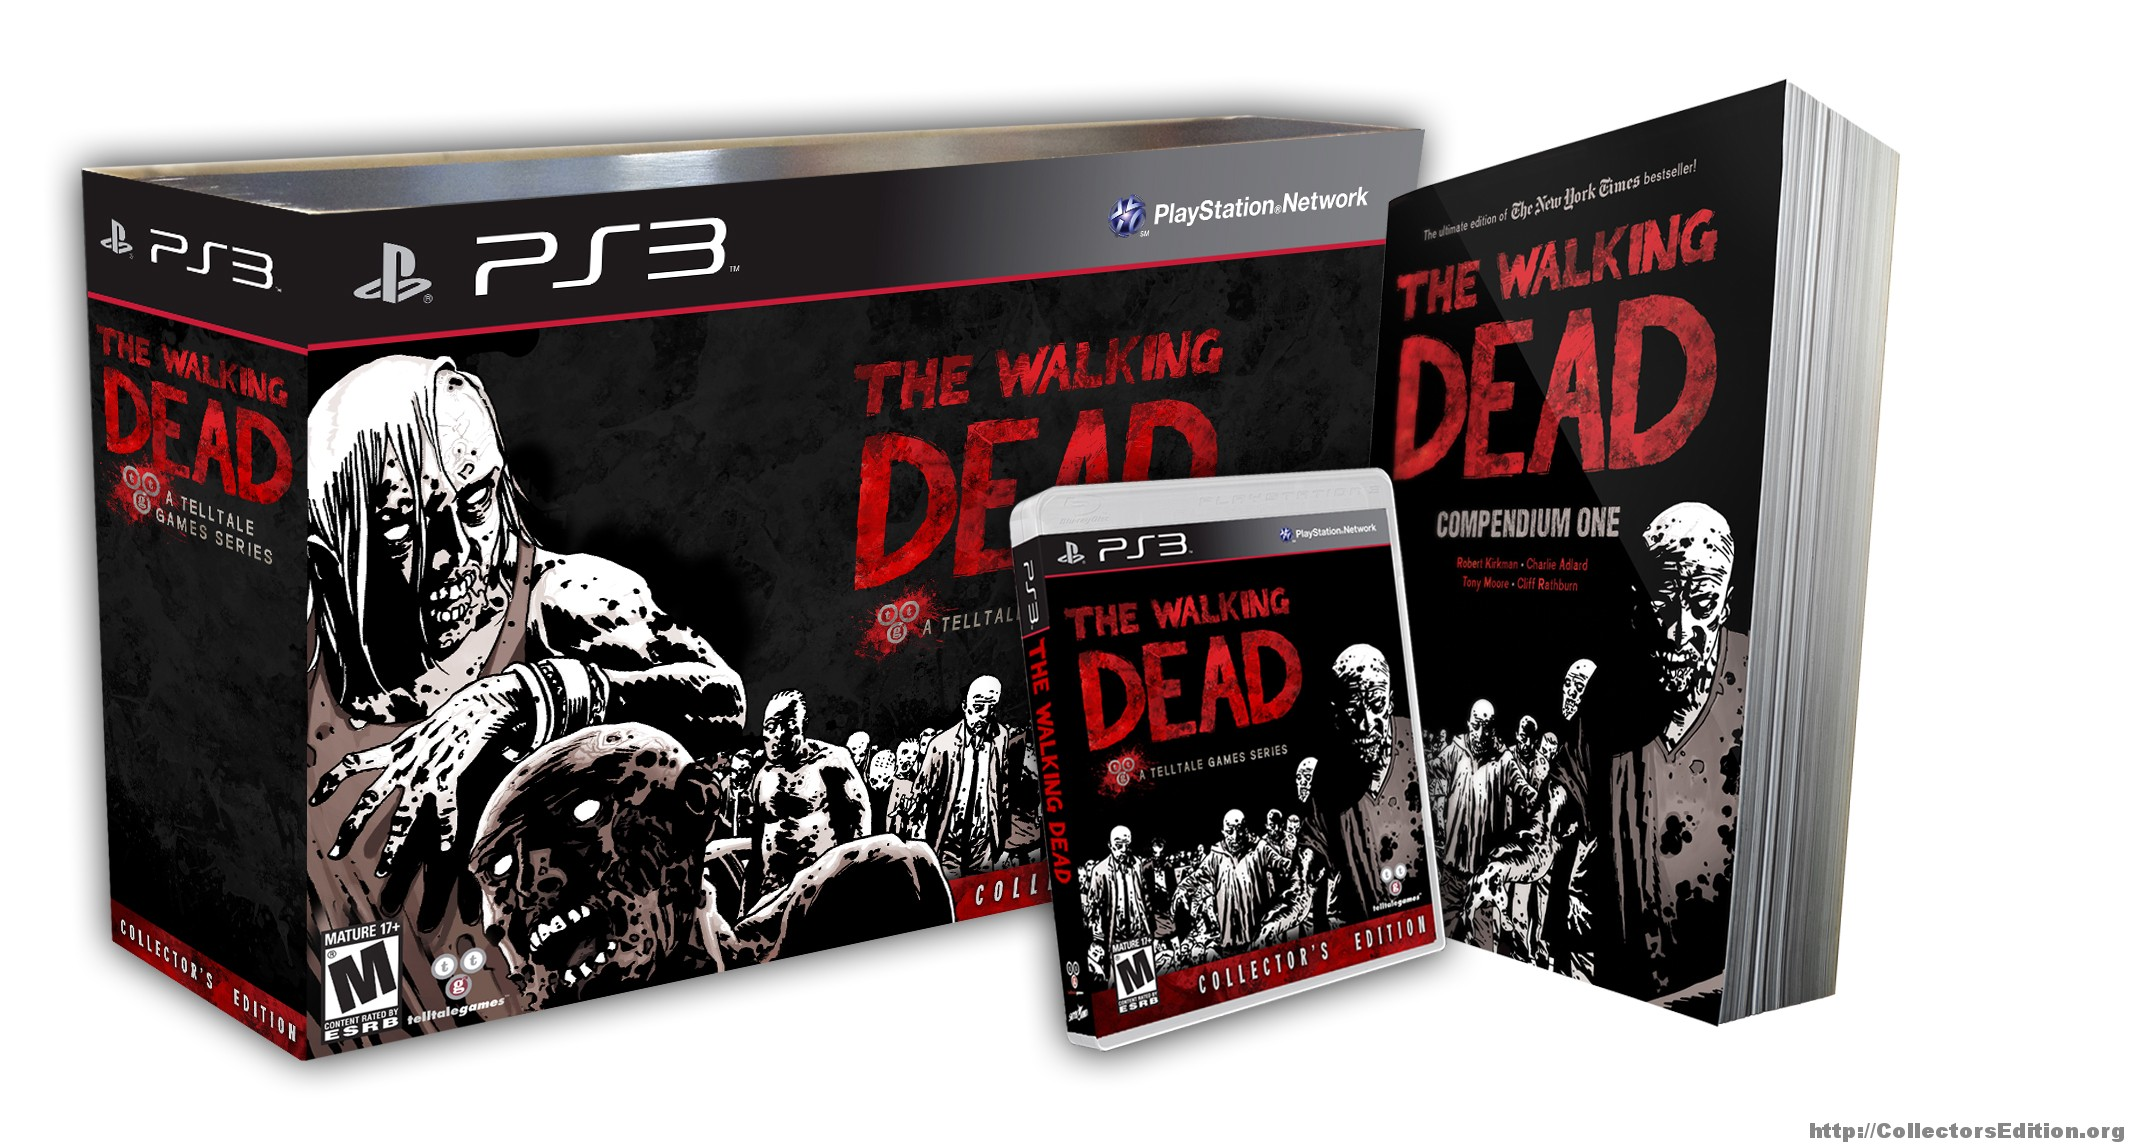 Edition For Ps3 Collectorsedition Org The Walking Dead Collector S Edition Ps3 1